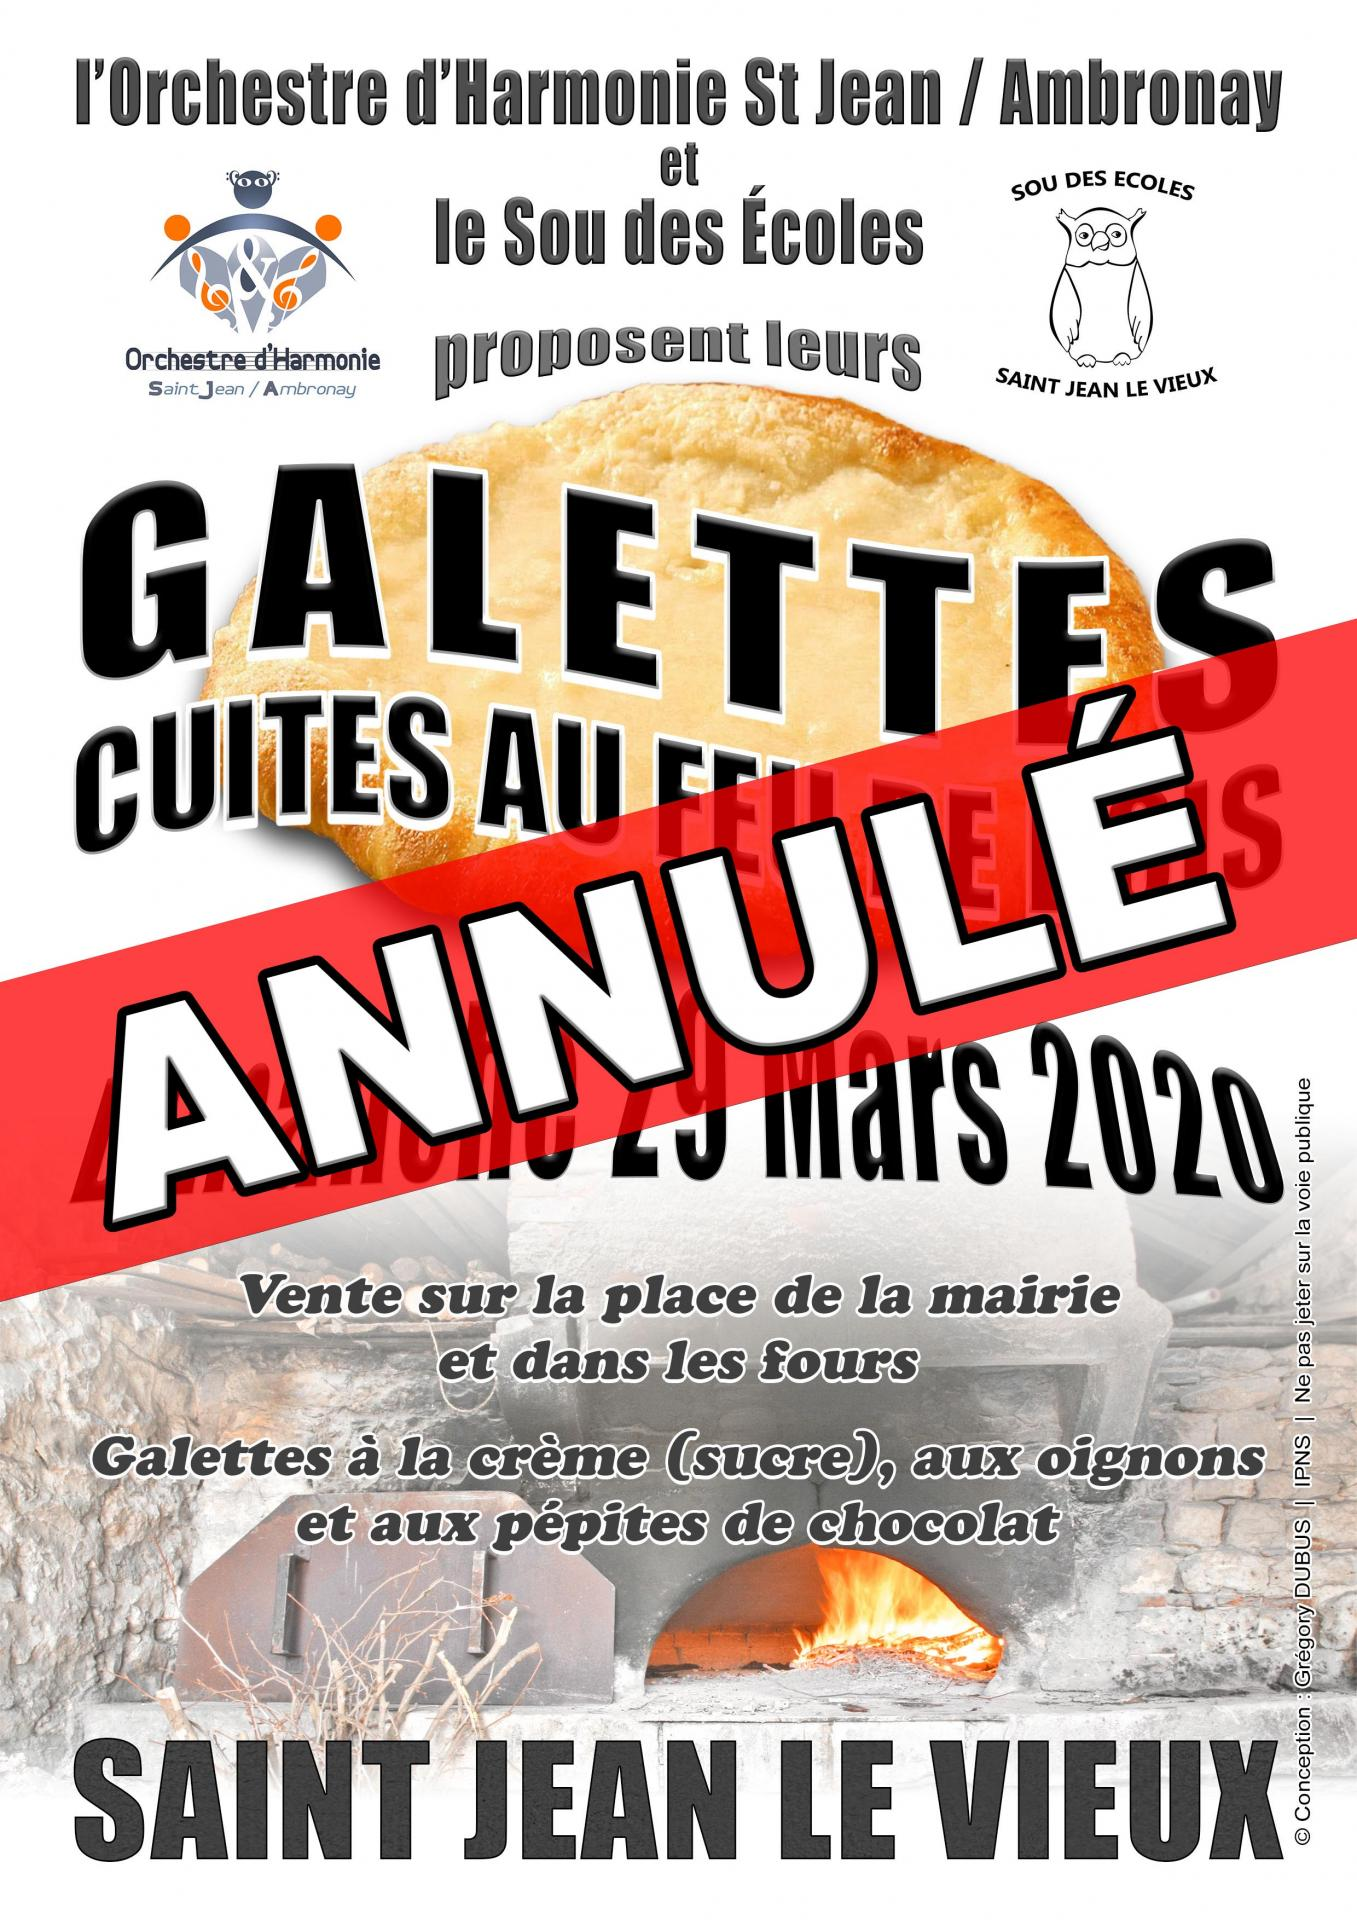 Affiche galettes ohsja mars 2020 v2002202009h40 annule